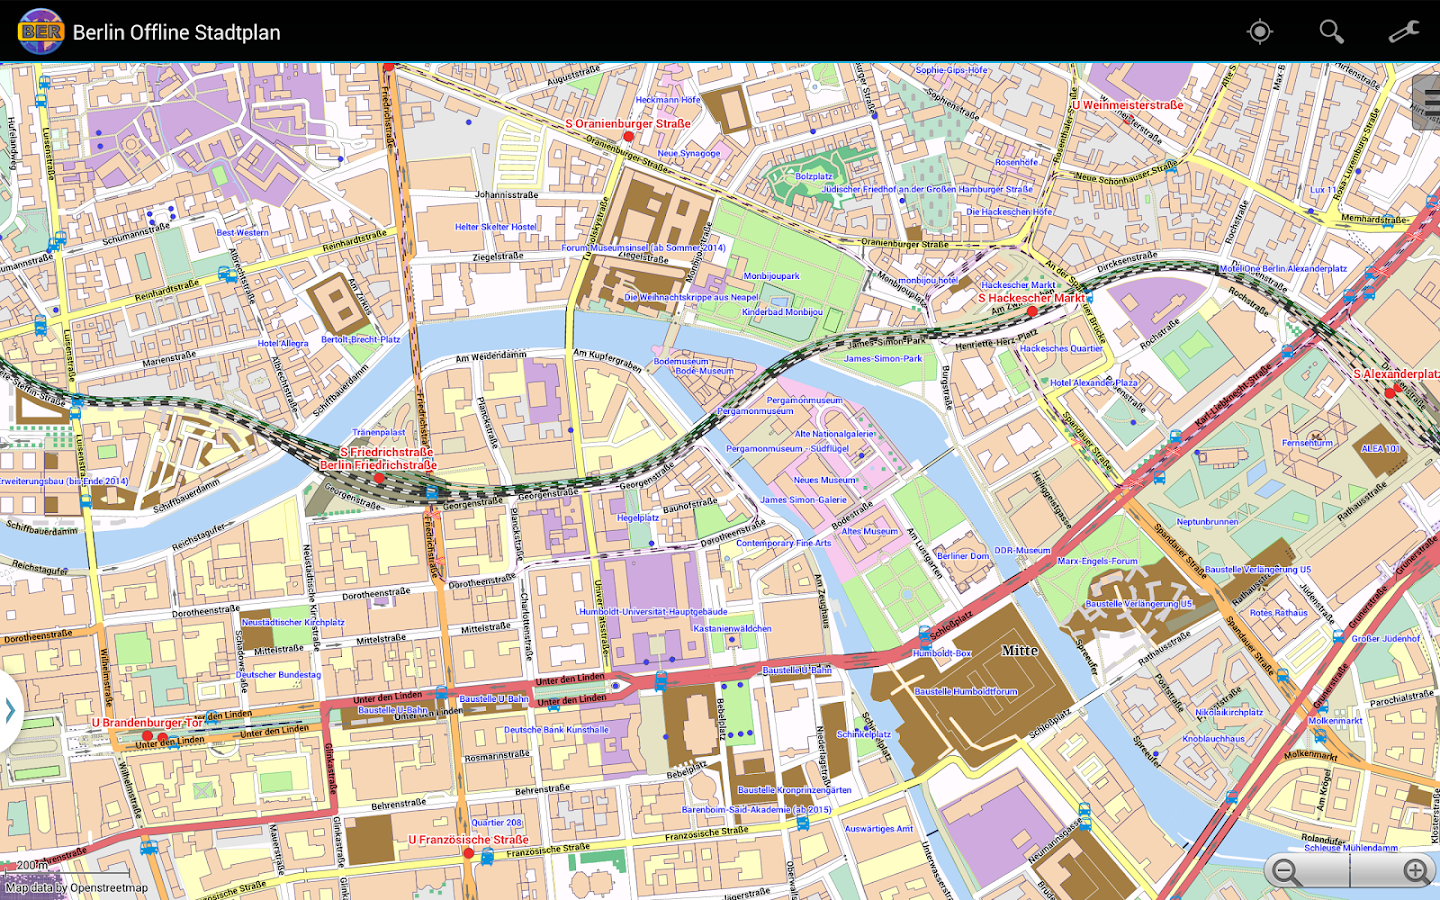 Berlin Offline City Map Android Apps on Google Play – Tourist Map of Berlin